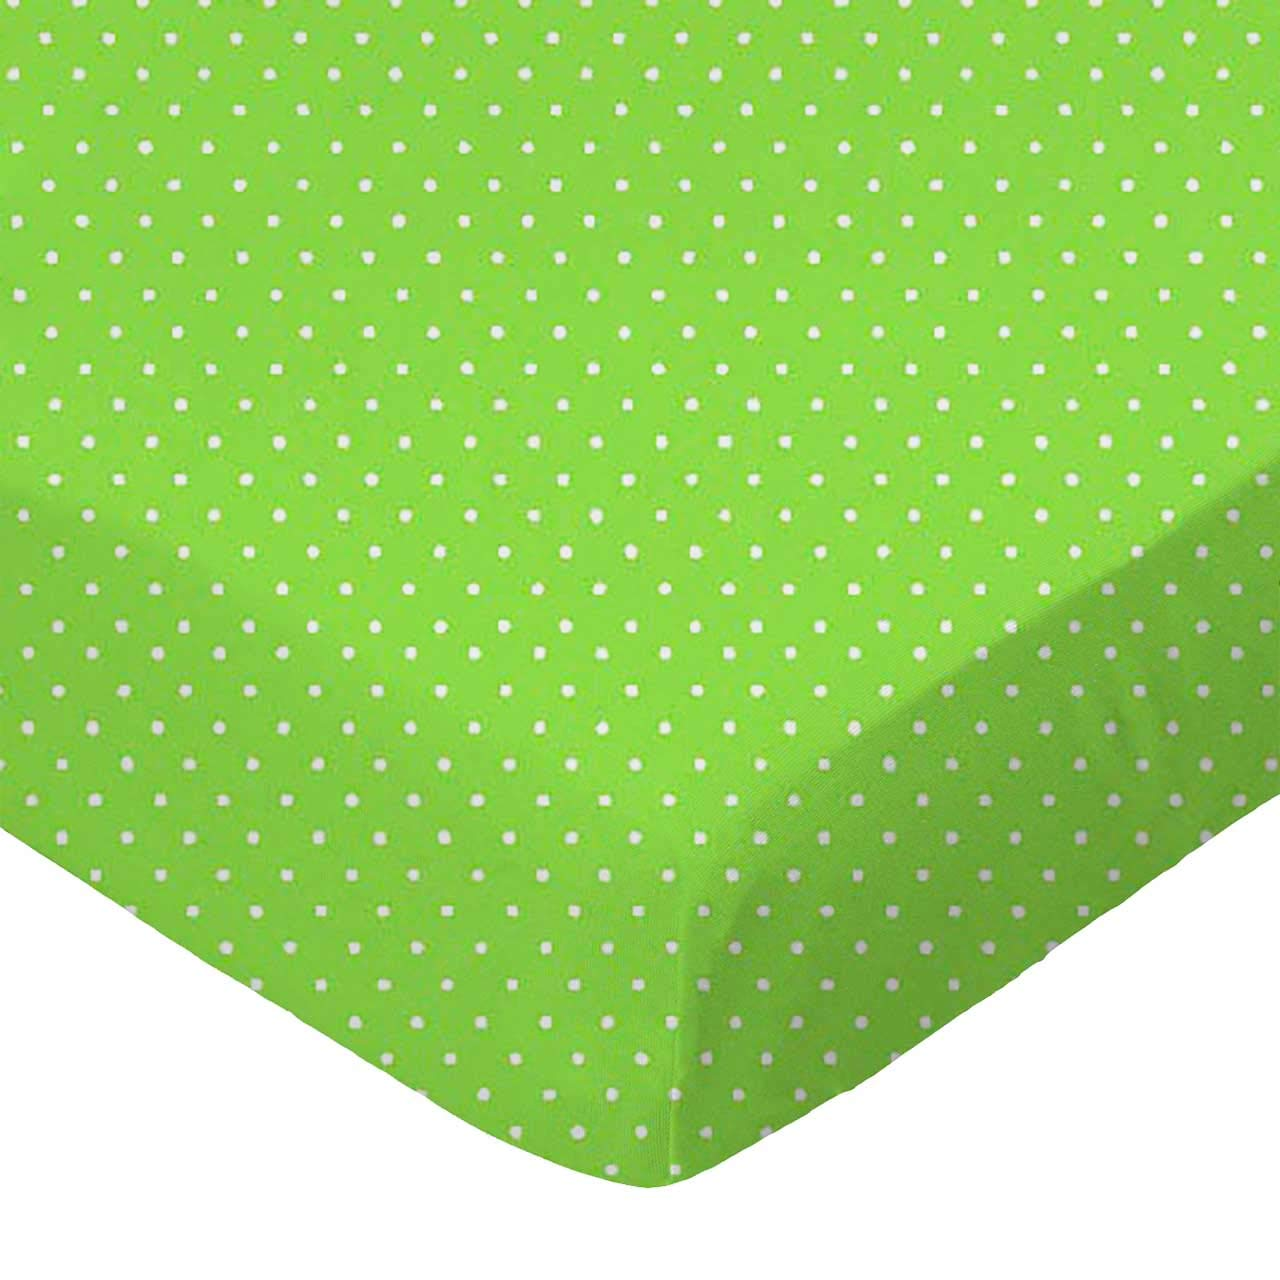 SheetWorld Fitted Bassinet Sheet - Primary Pindots Green Woven - Made In USA by sheetworld   B003R9V69A